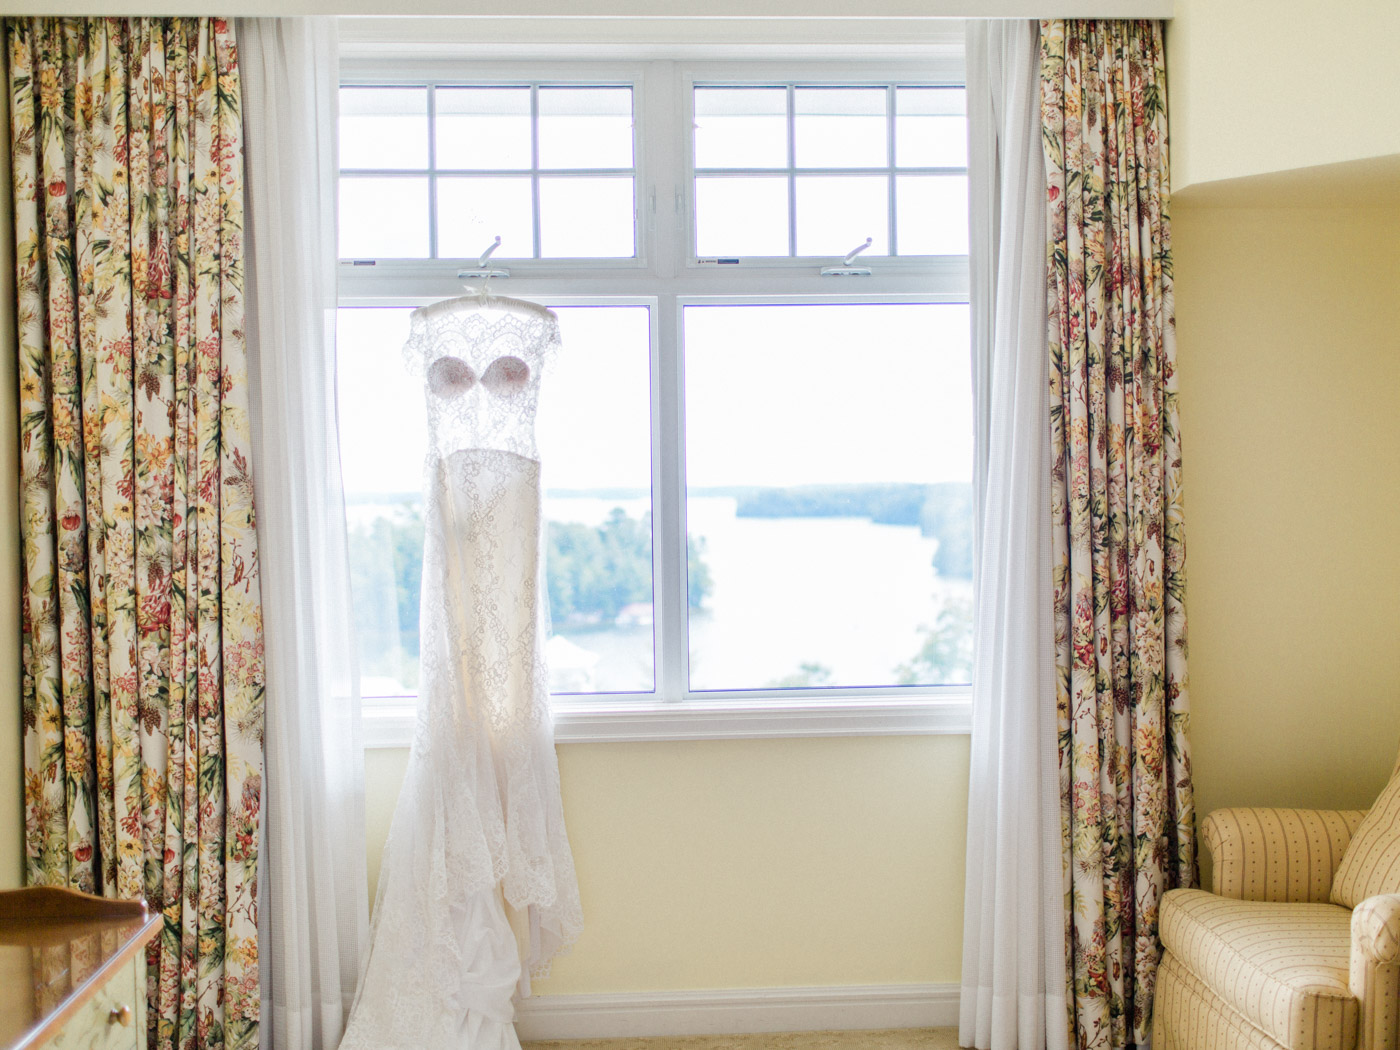 Fine art photography of wedding details. Captured by Muskoka wedding photographer Corynn Fowler Photography.